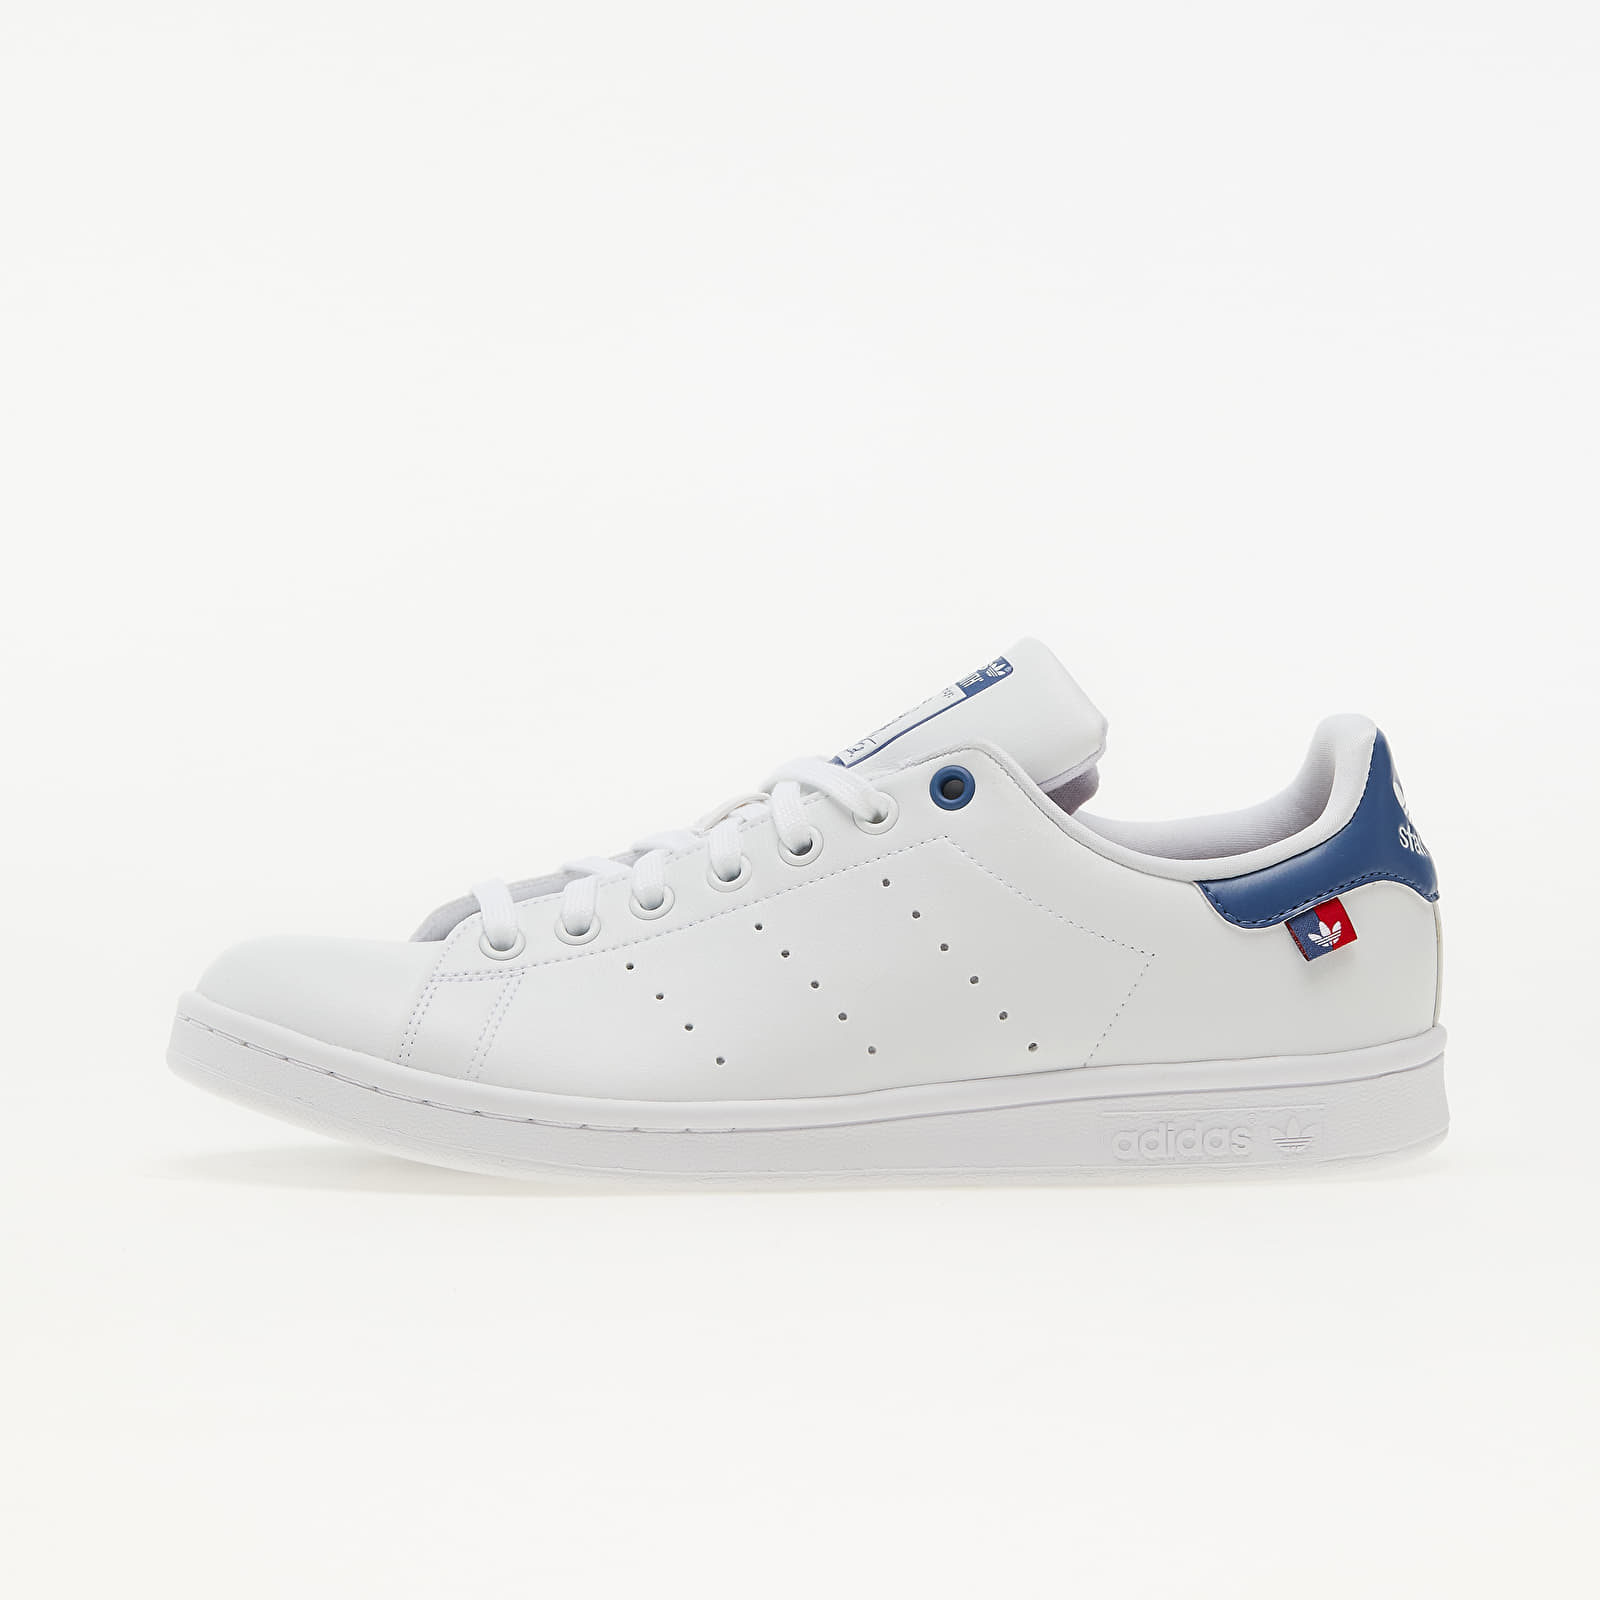 adidas Stan Smith Ftw White/ Scarlet/ Core Blue EUR 44 2/3